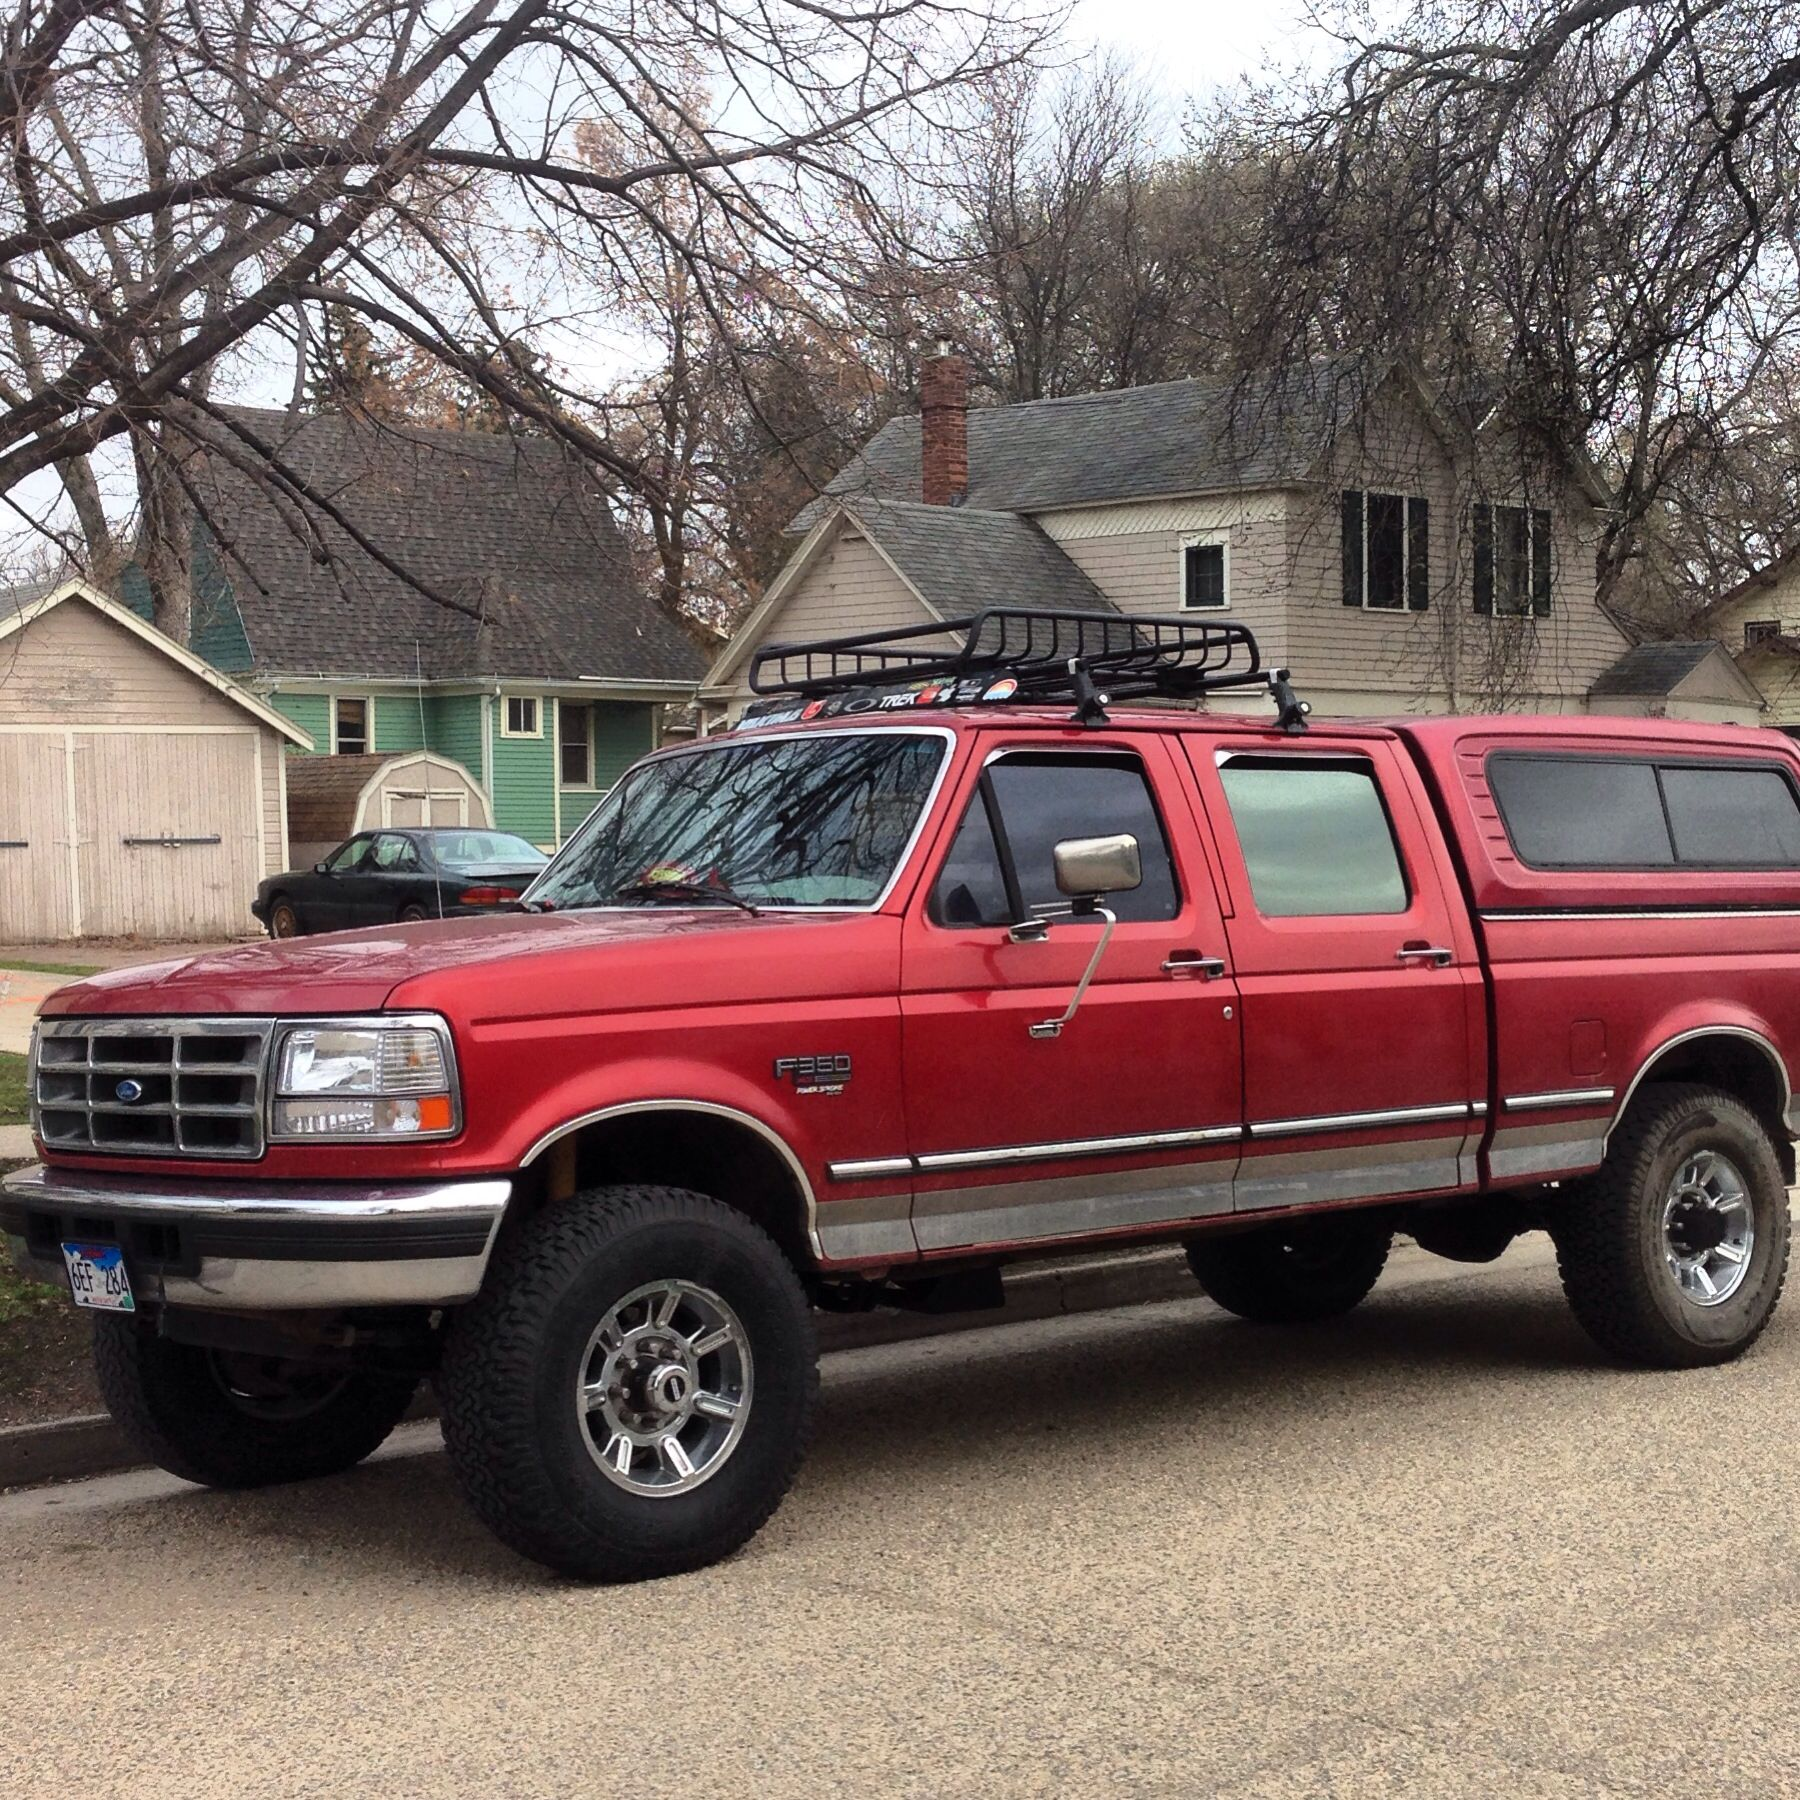 1997 Crew Cab 7.3 Powerstroke F 250 Yakima Roof Rack Topper Obs 35 Inch  Tires